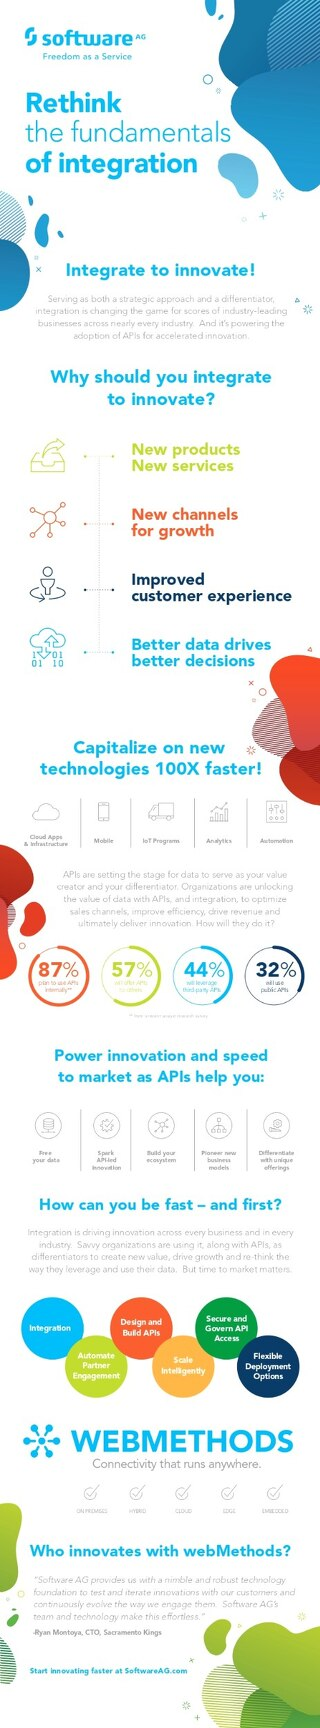 Speed to Market infographic